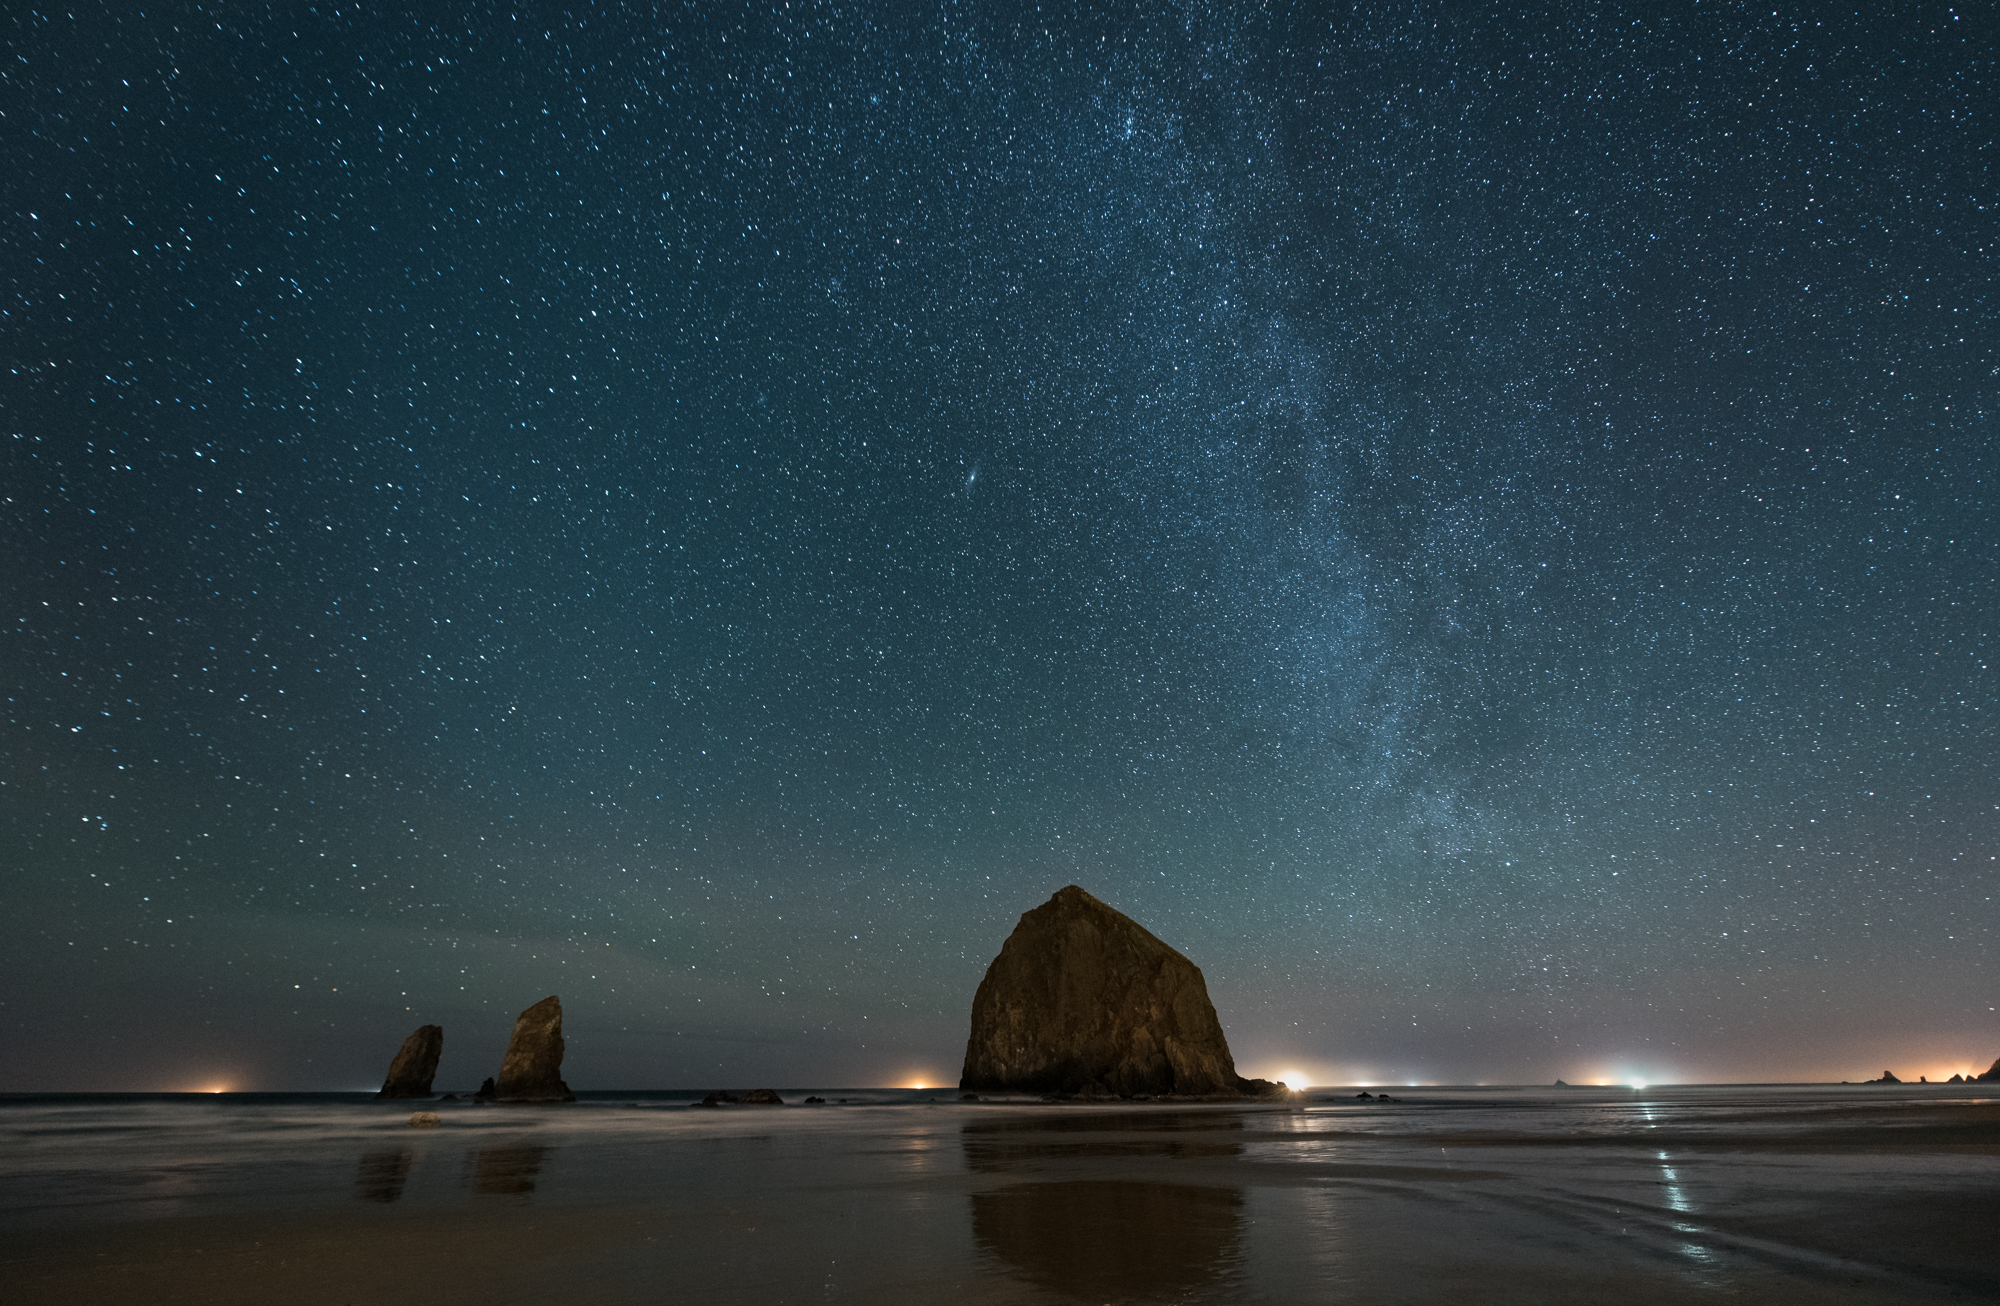 "Normal     0                     false     false     false         EN-US     X-NONE     X-NONE                                                                                                                                  No Core in the Haystack, Oregon 2016. Nikon D750 and 14-24mm f/2.8 lens. 30 seconds, f/2.8, ISO 3200. © Gabriel Biderman.                                                                                                                                                                                                                                                                                                                                                                                                                                                                                                                                                                                    /* Style Definitions */  table.MsoNormalTable 	{mso-style-name:""Table Normal""; 	mso-tstyle-rowband-size:0; 	mso-tstyle-colband-size:0; 	mso-style-noshow:yes; 	mso-style-priority:99; 	mso-style-parent:""""; 	mso-padding-alt:0in 5.4pt 0in 5.4pt; 	mso-para-margin:0in; 	mso-para-margin-bottom:.0001pt; 	mso-pagination:widow-orphan; 	font-size:10.0pt; 	font-family:""Times New Roman"",""serif""; 	border:none;}"